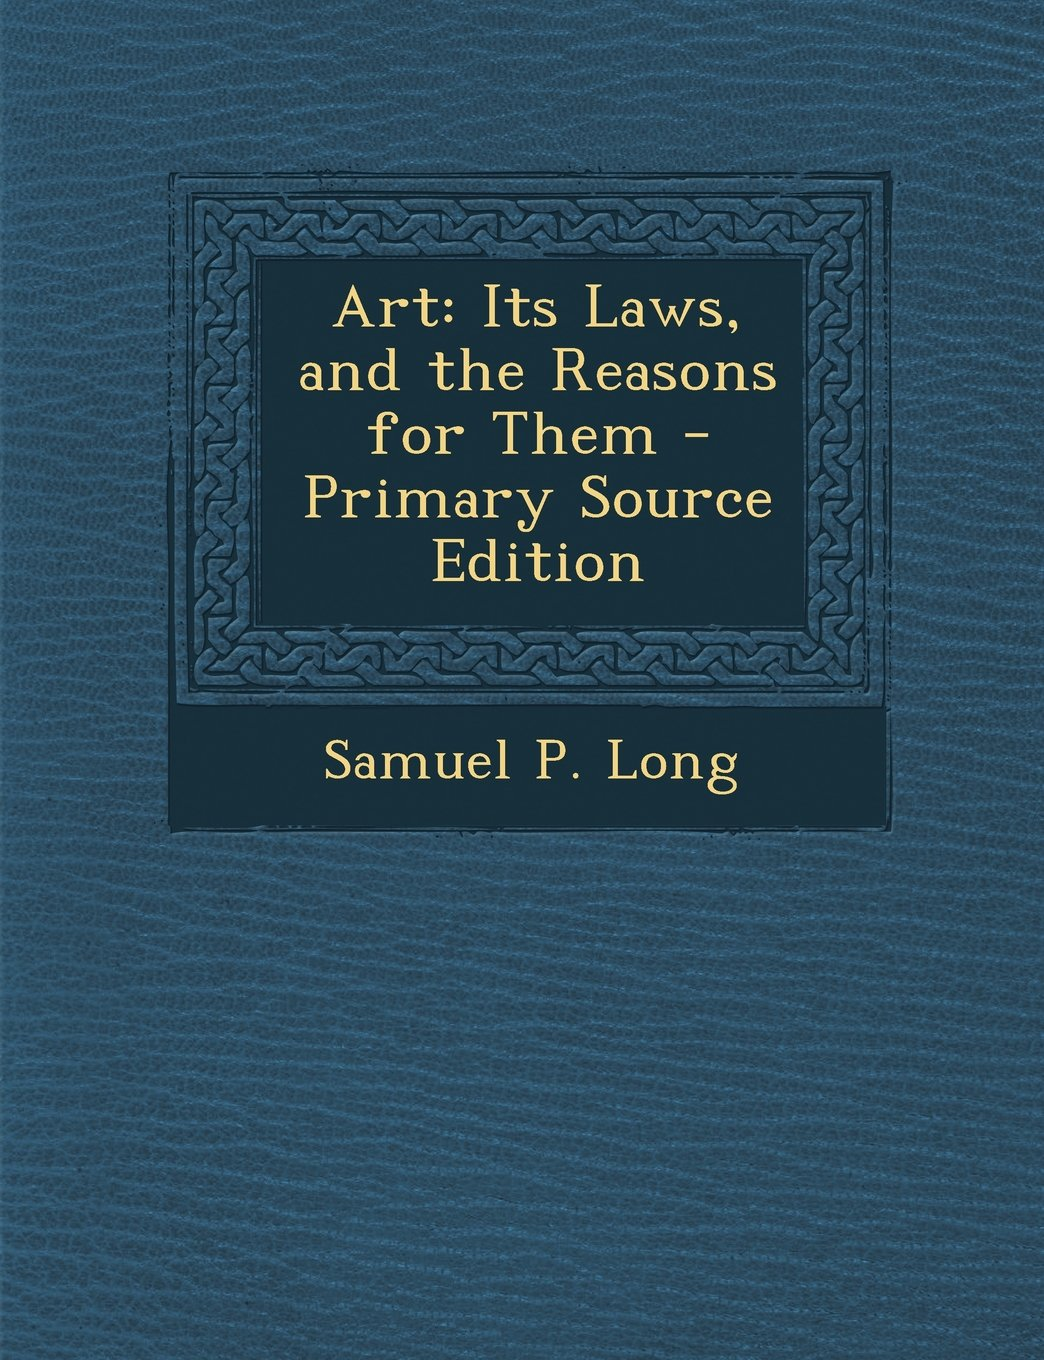 Download Art: Its Laws, and the Reasons for Them - Primary Source Edition PDF ePub fb2 book